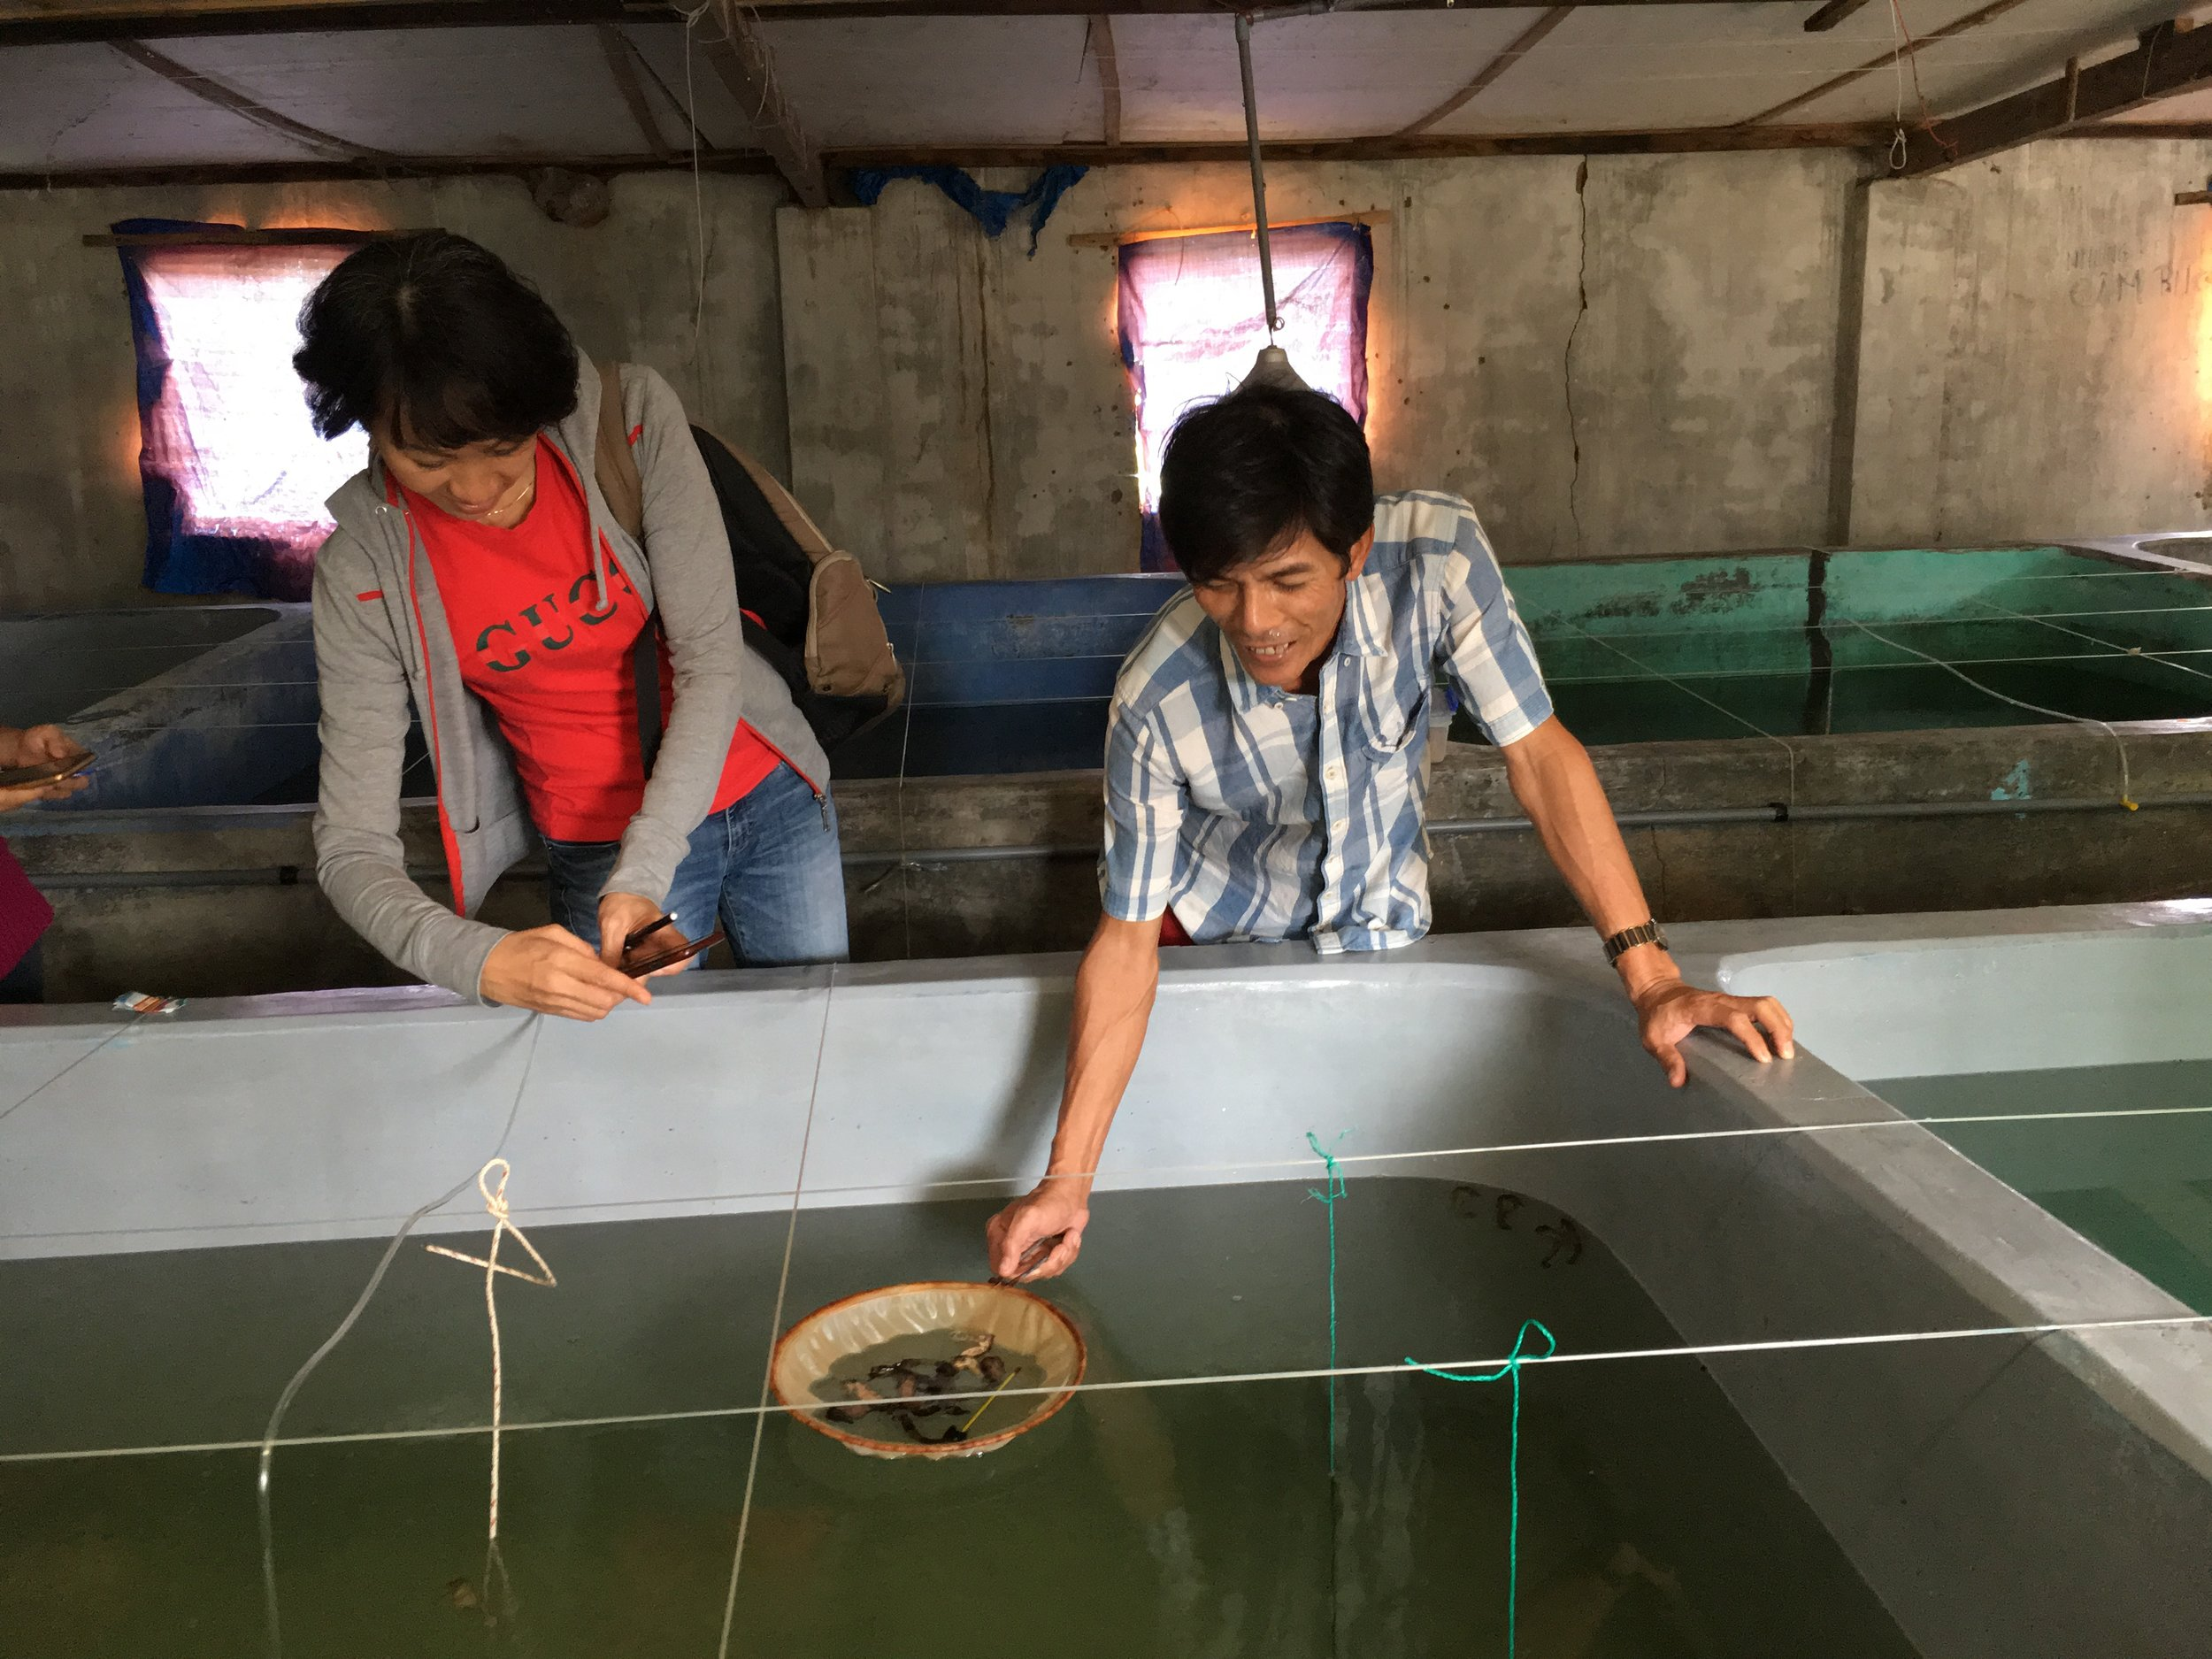 Aquaculture operations in the Cam Ranh, Khanh Hoa Province. Culturists began breeding seahorses in 2004/2005. Seahorses are born in captivity, to wild caught parents, and traded internationally for display in aquariums.